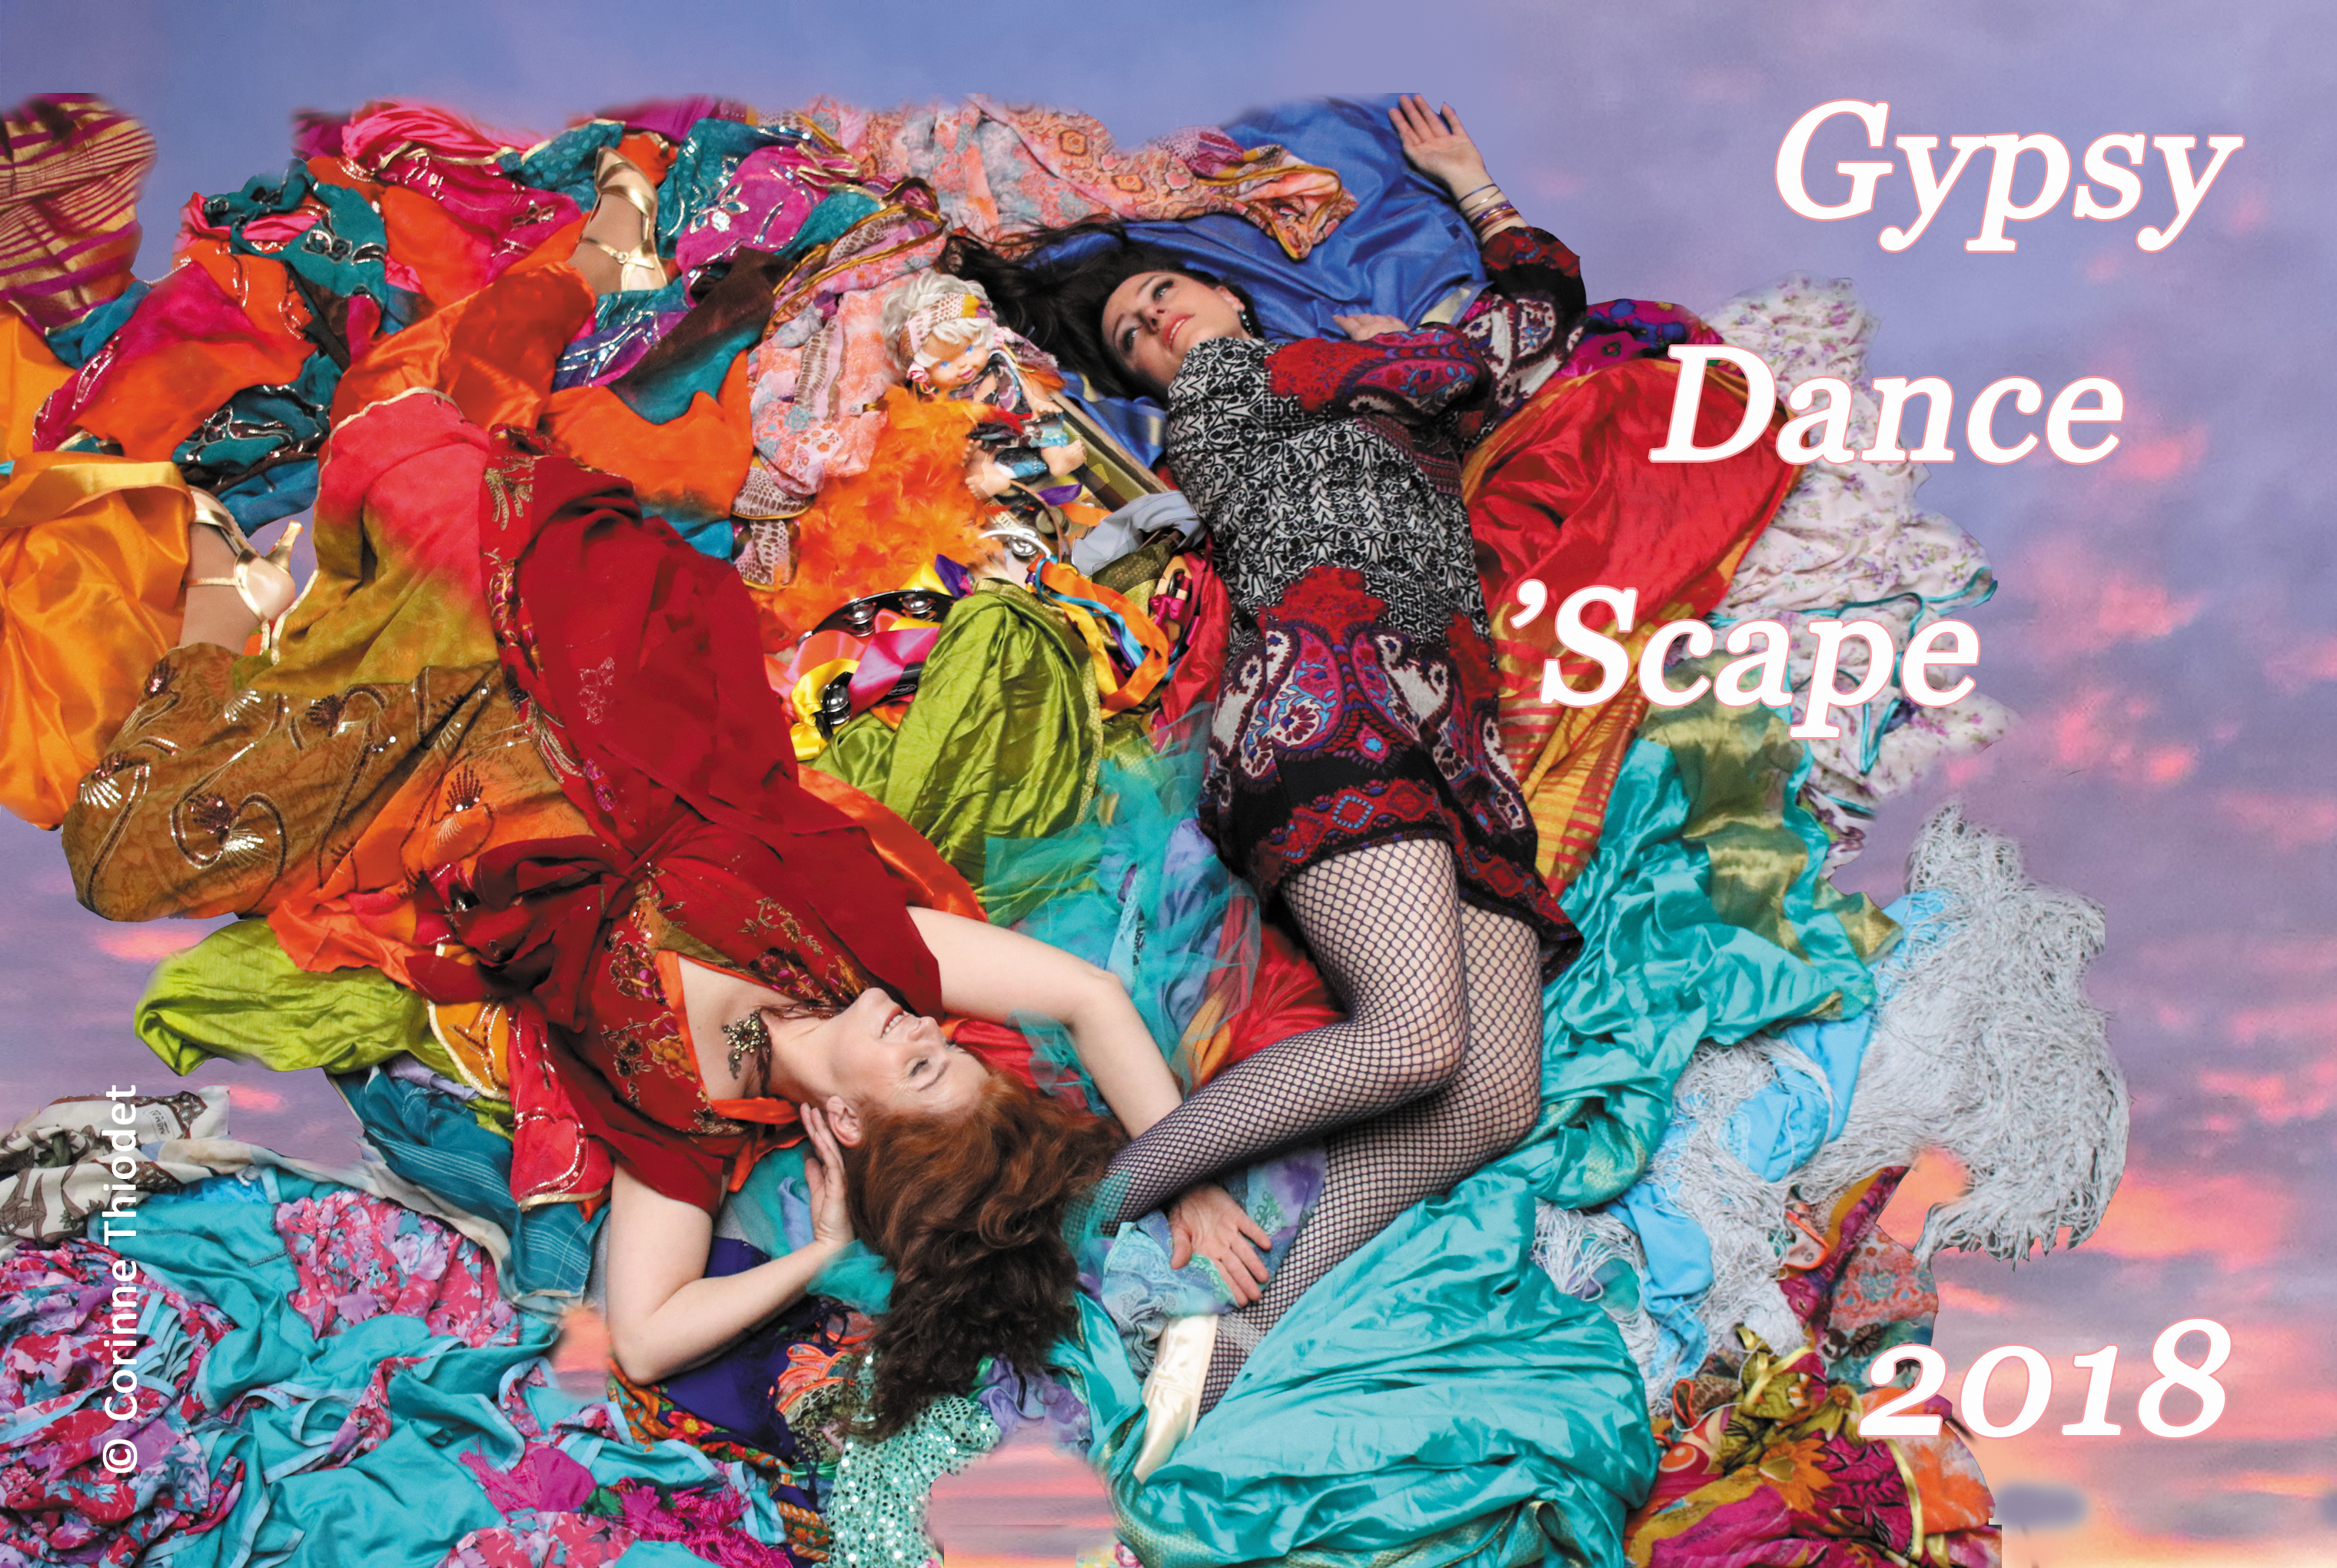 Gypsy Dance'Scape 2018